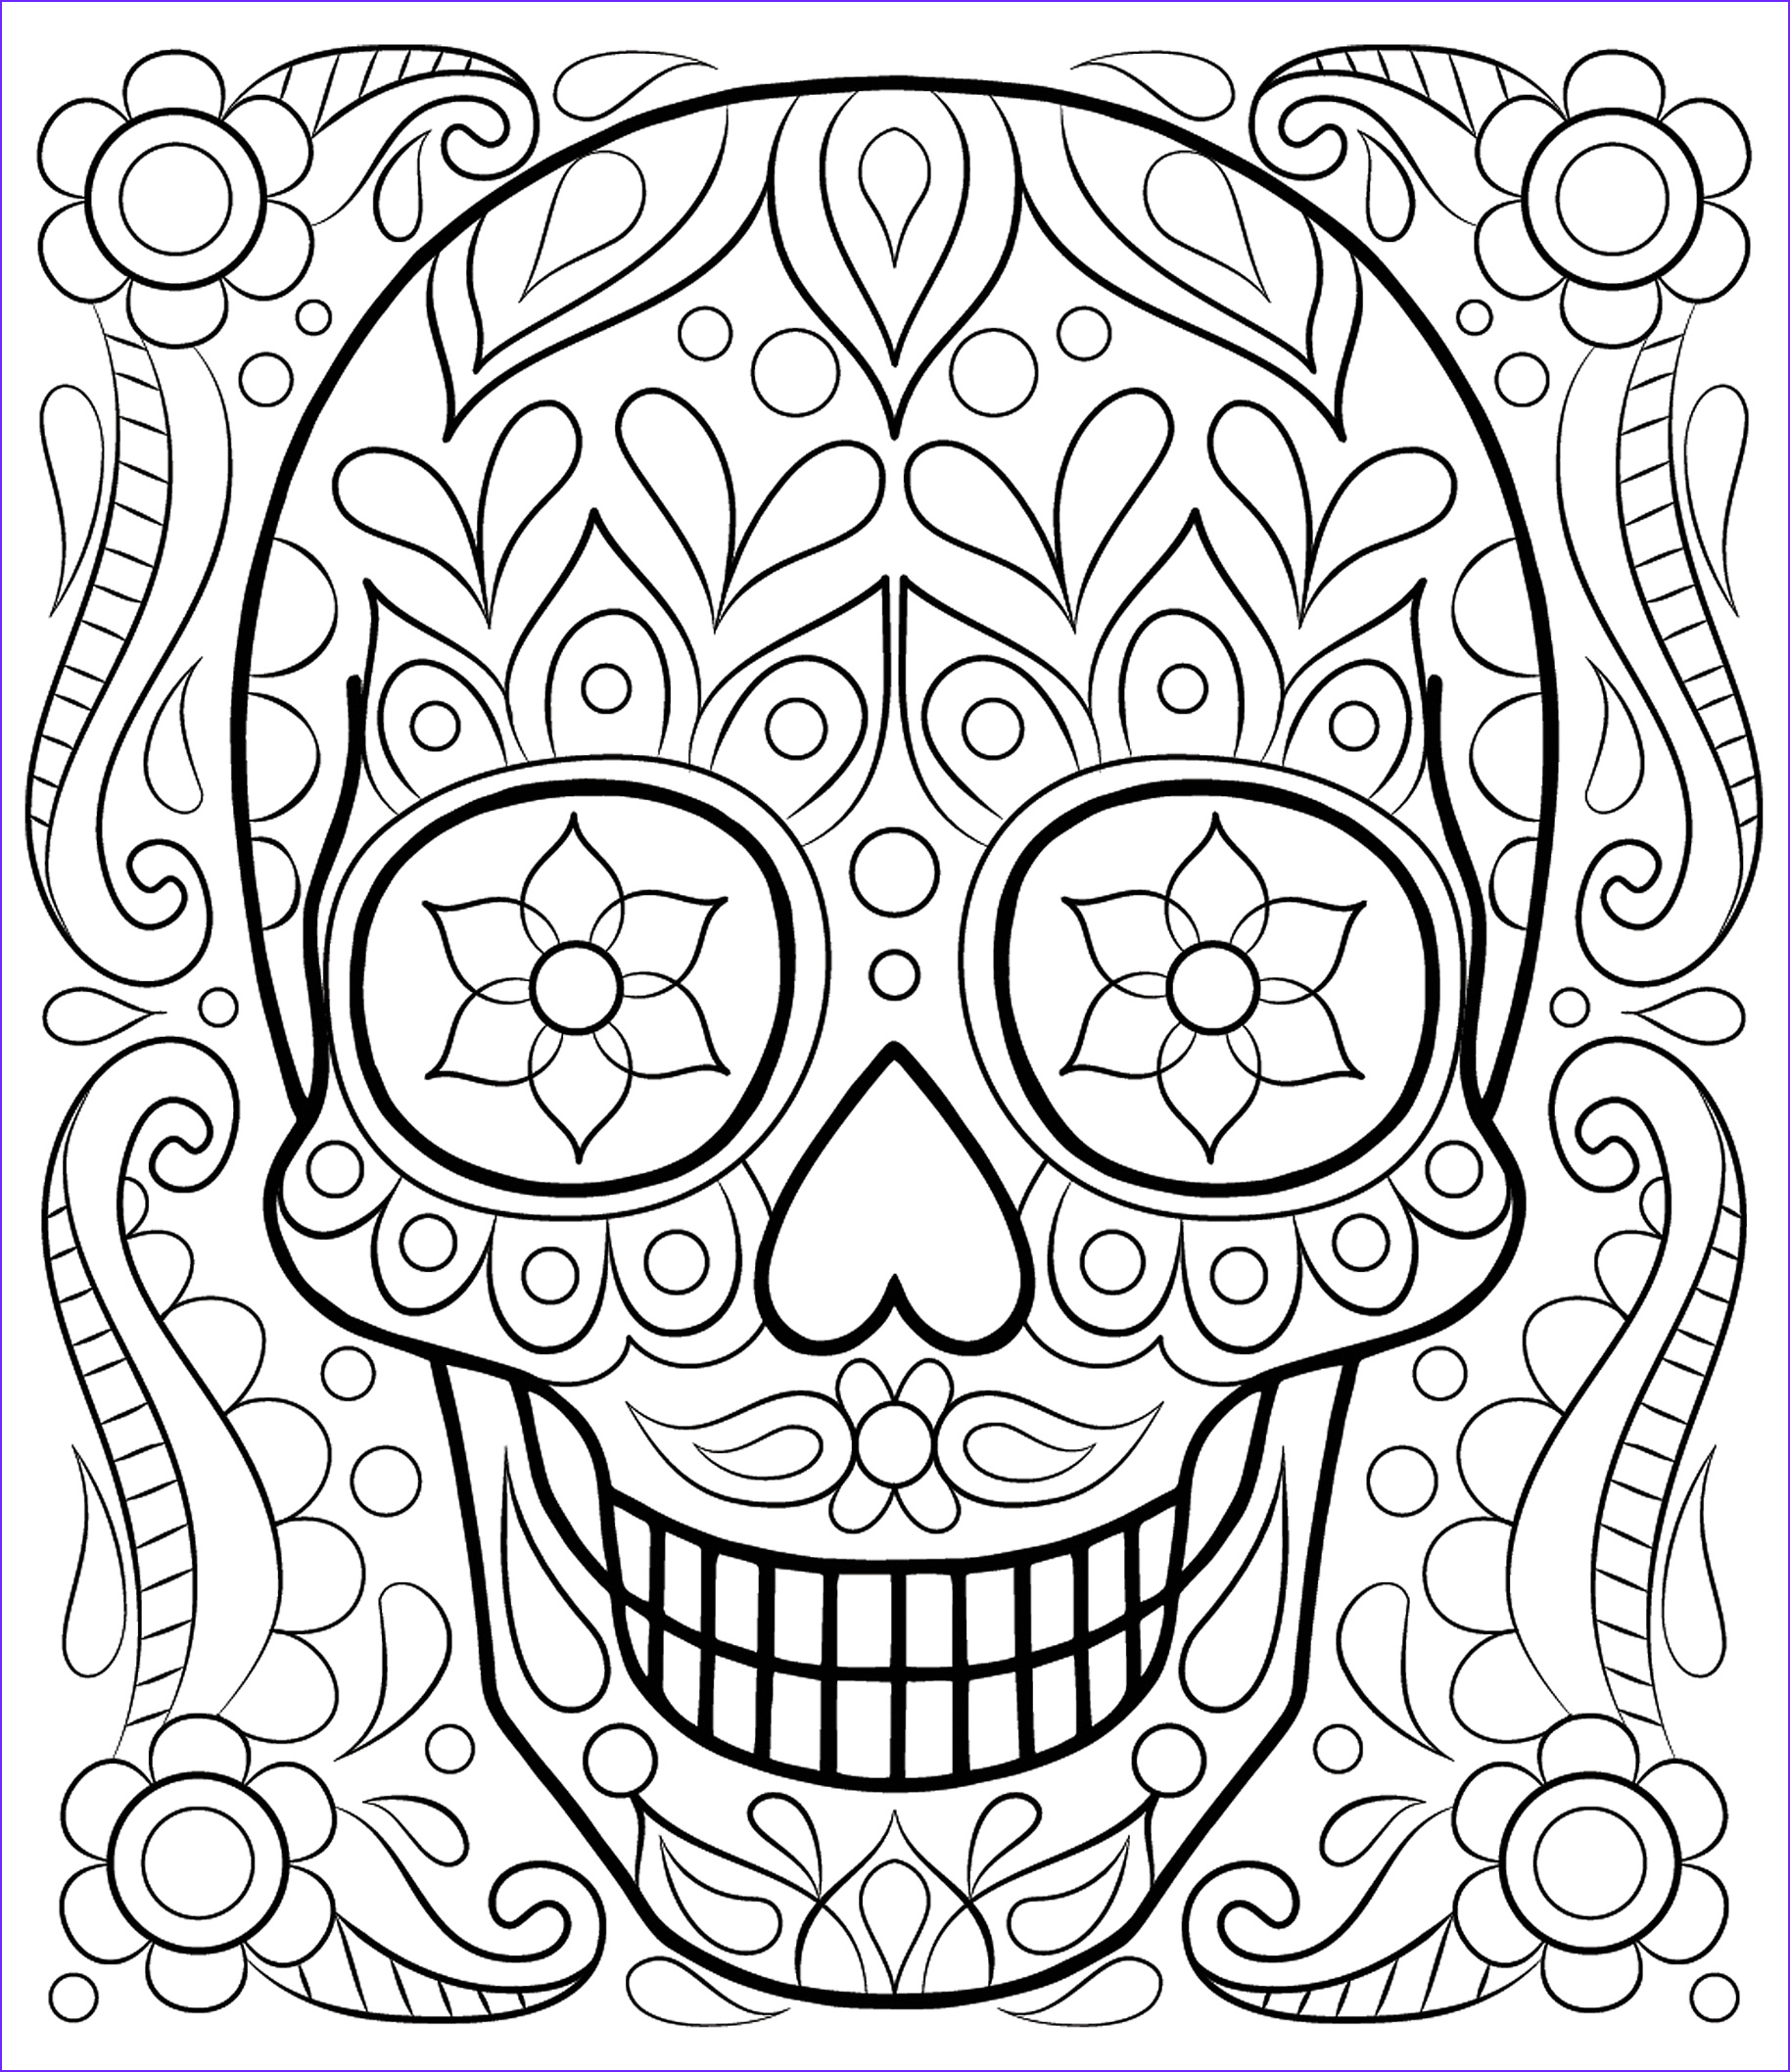 Coloring Coloring New Collection 20 Free Adult Colouring Pages the organised Housewife